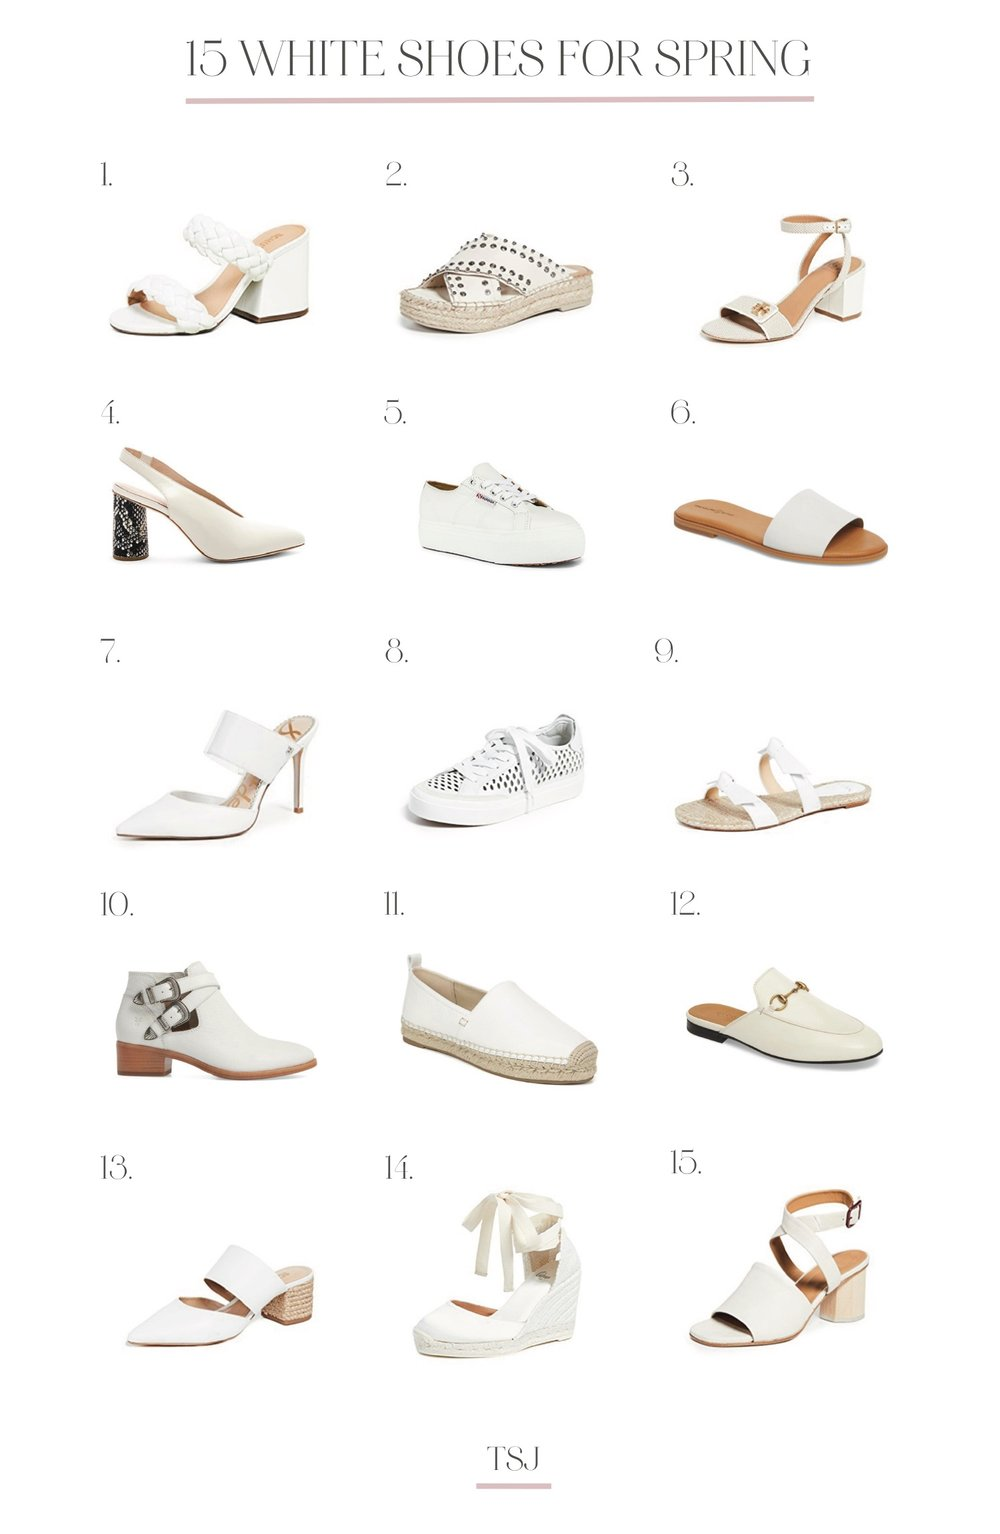 15+white+shoes+for+spring.jpg